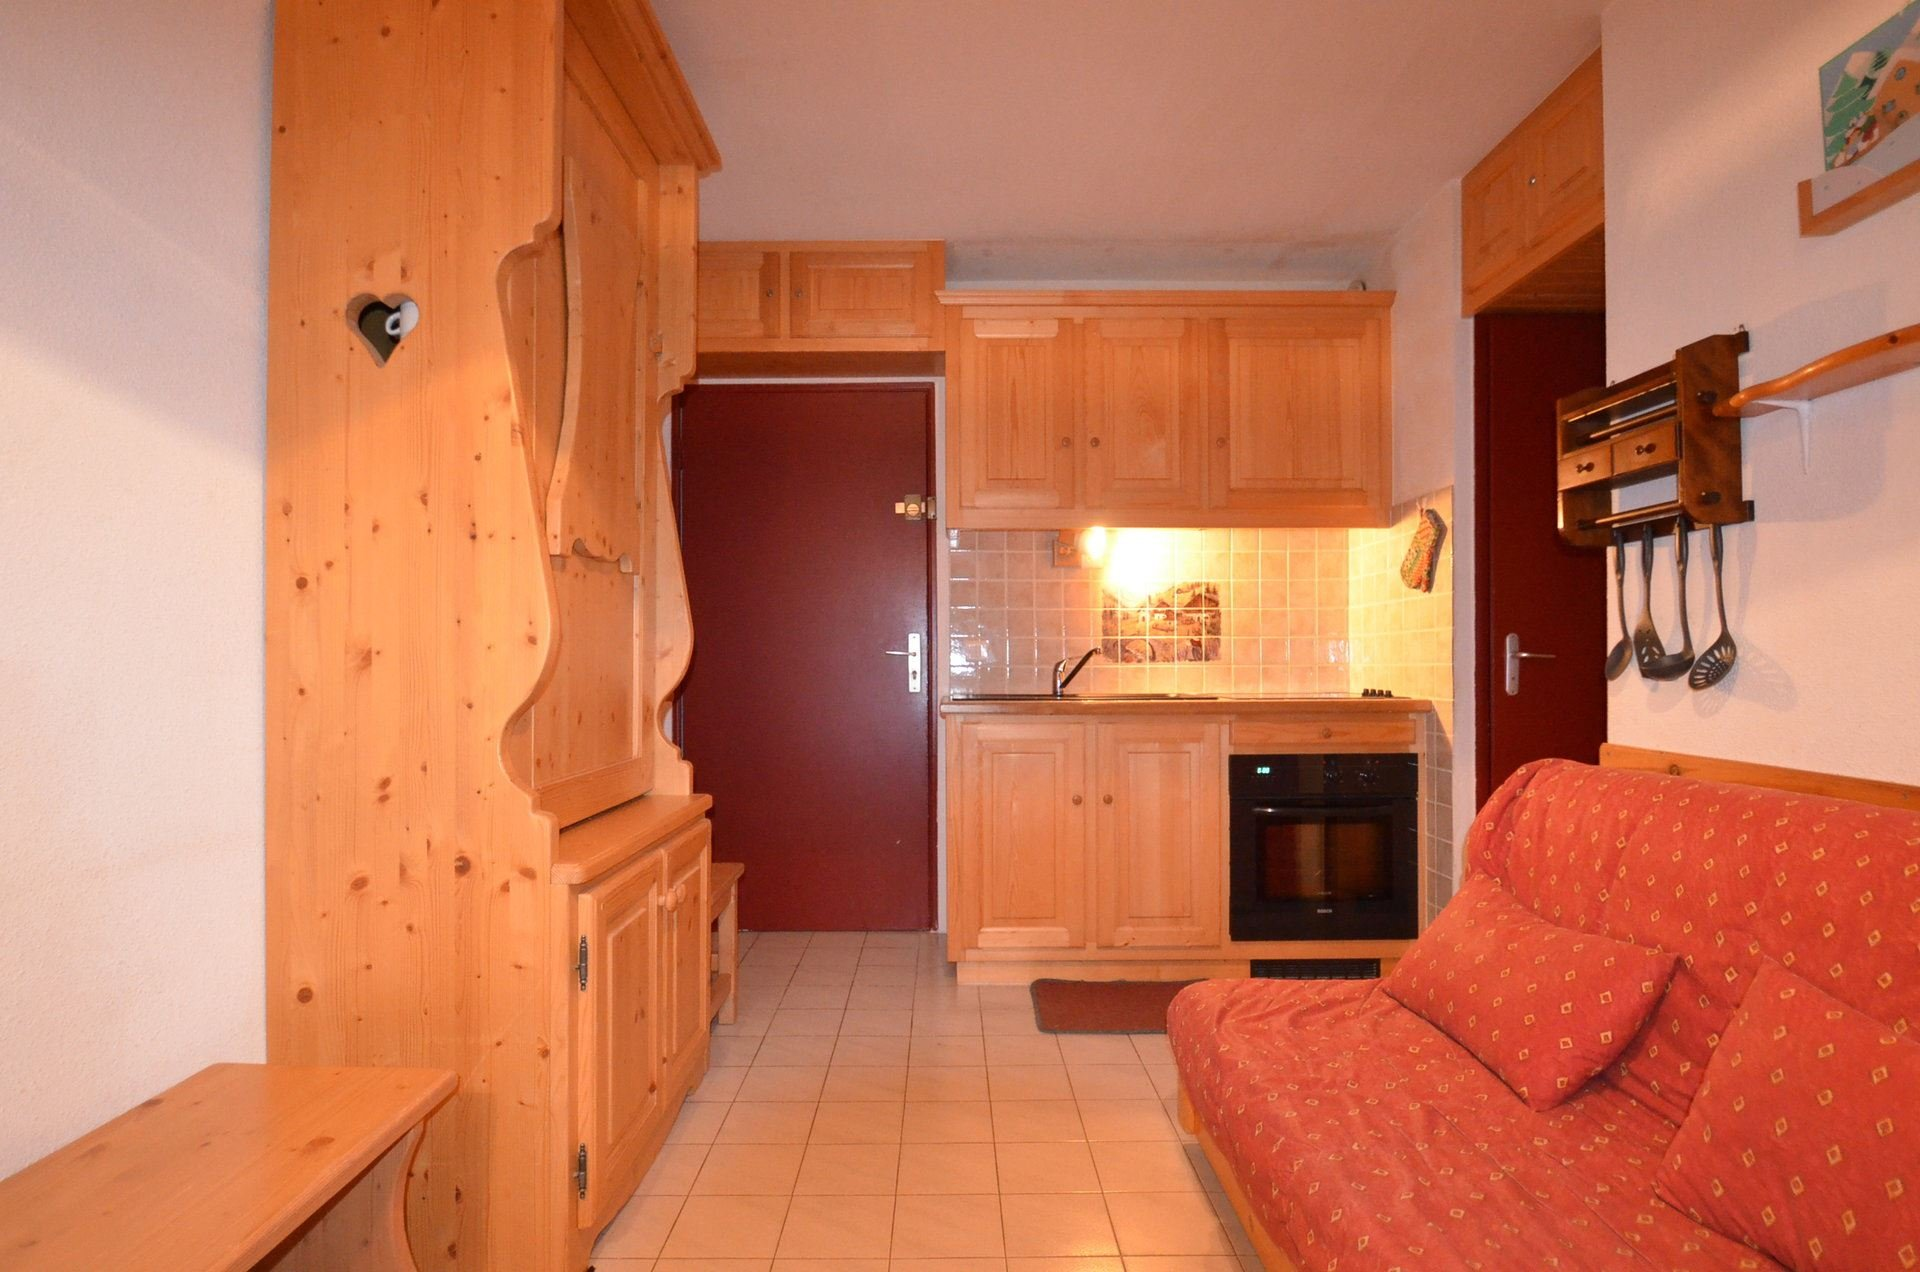 4 Pers Studio 150m from the slopes / JETTAY B27